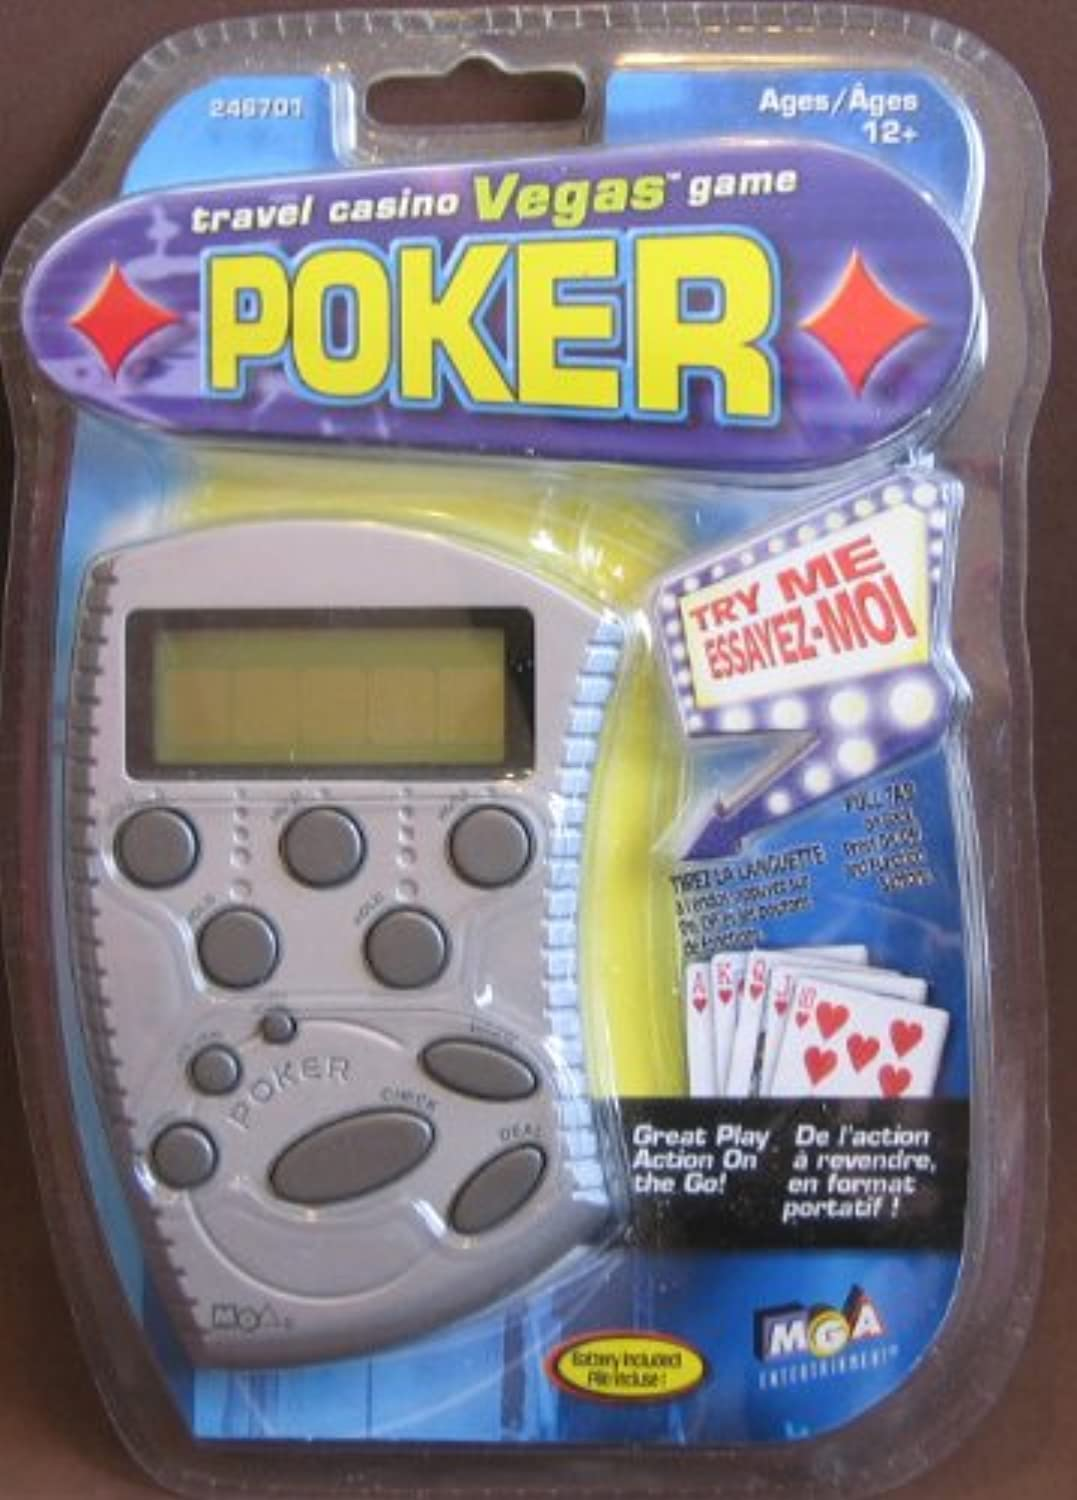 Travel Vegas(TM) Poker Handheld Game (246701)